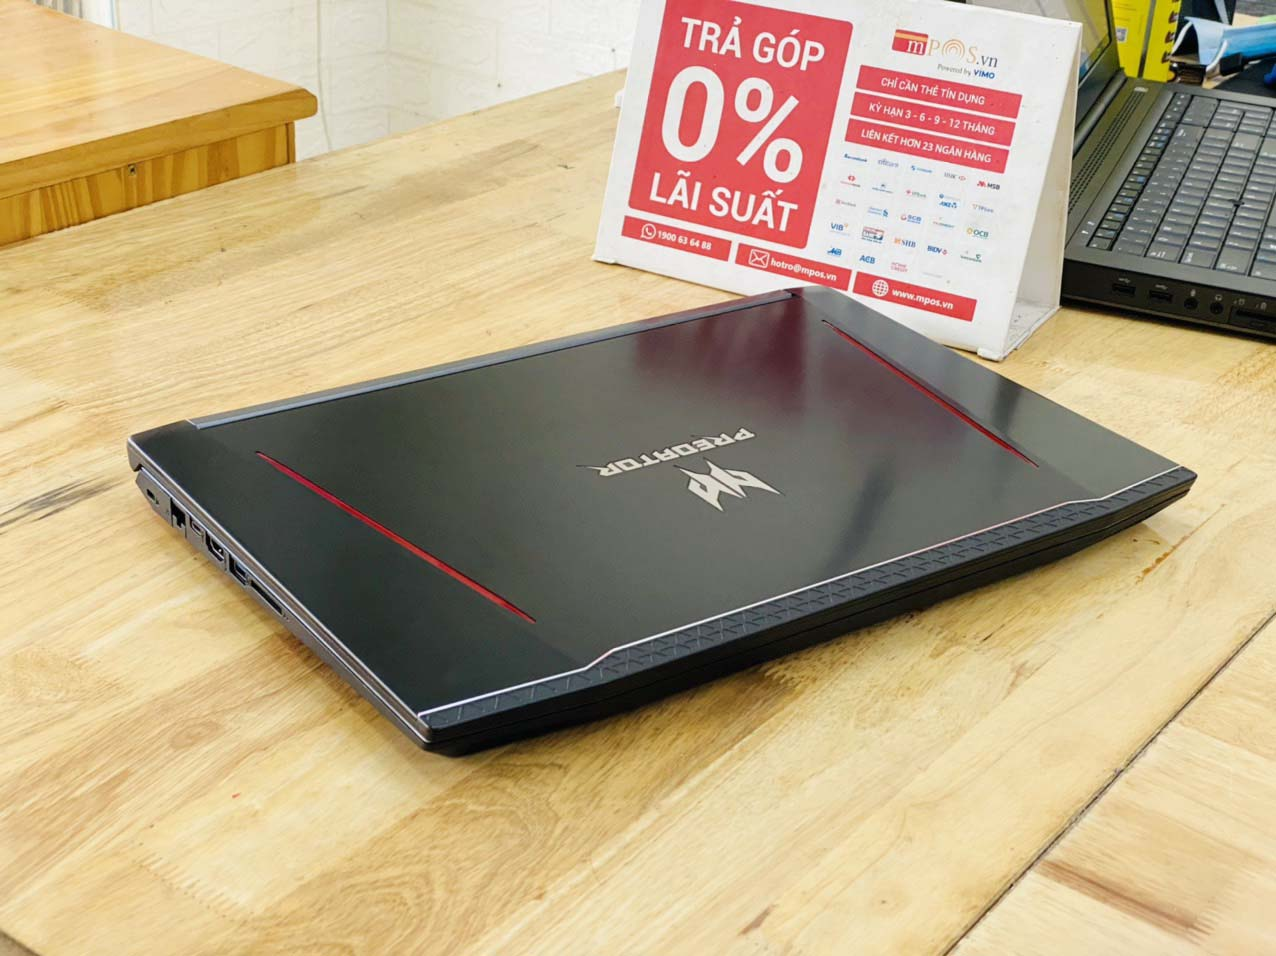 Laptop Gaming Acer Predator PH315-51 i7-8750H Ram 16G SSD 512G Nvidia GTX 1060(6G) 15.6 inch Full HD Like New